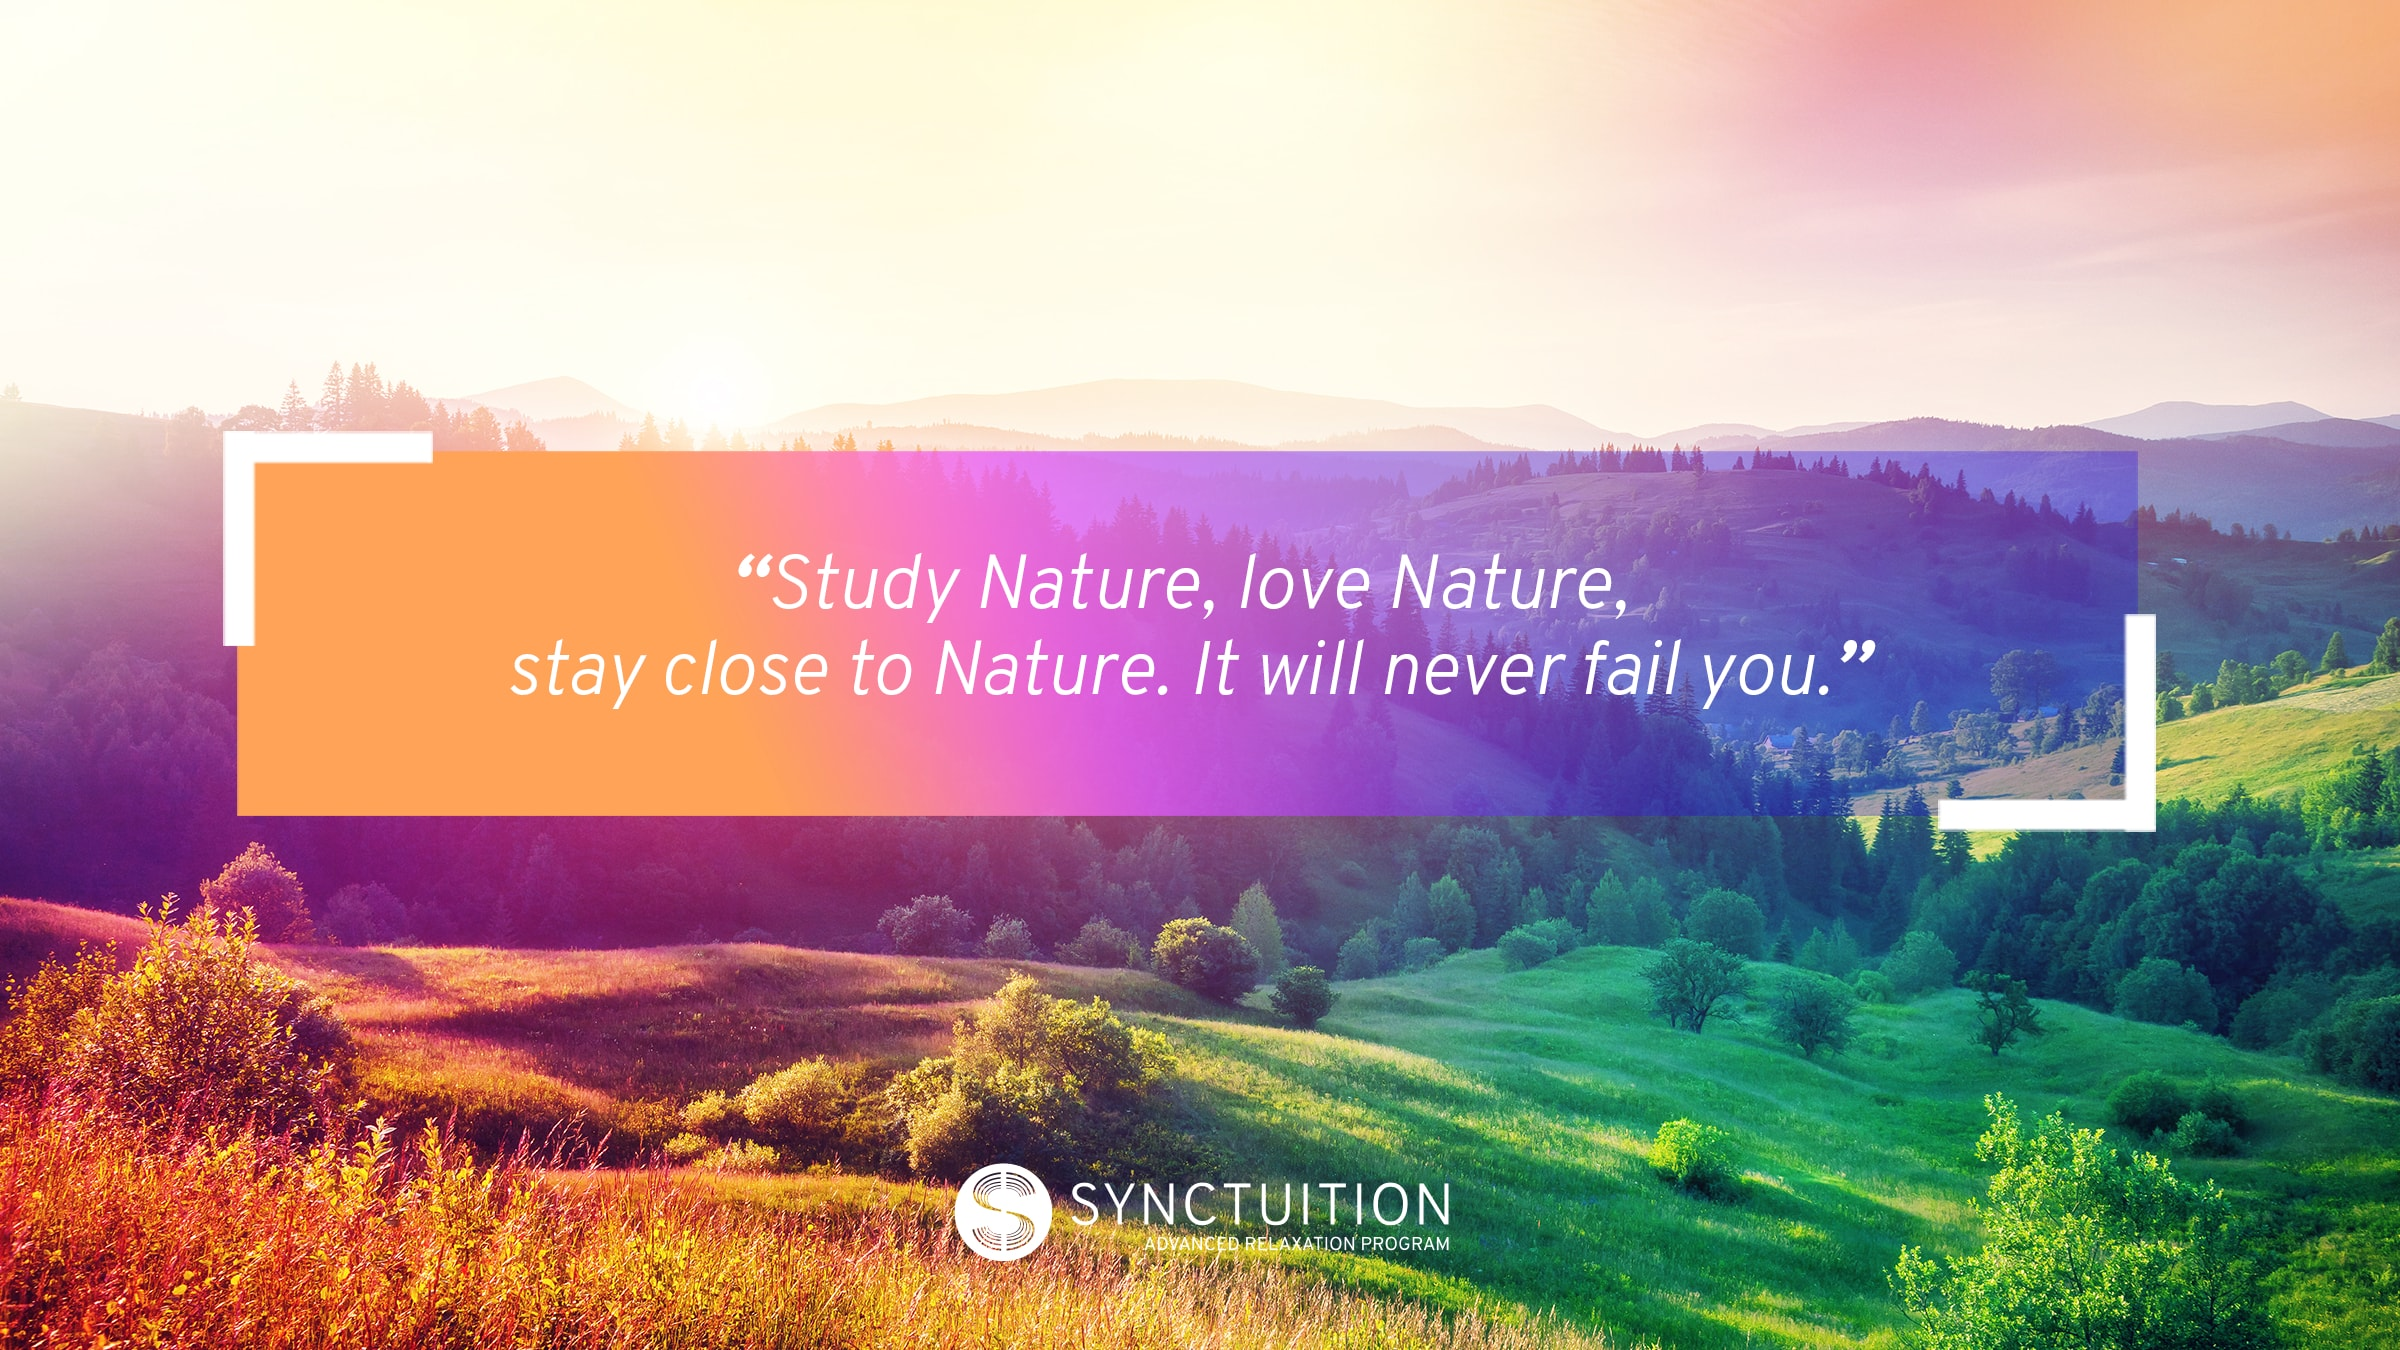 Nature sounds are excellent for our spiritual and mental wellbeing.